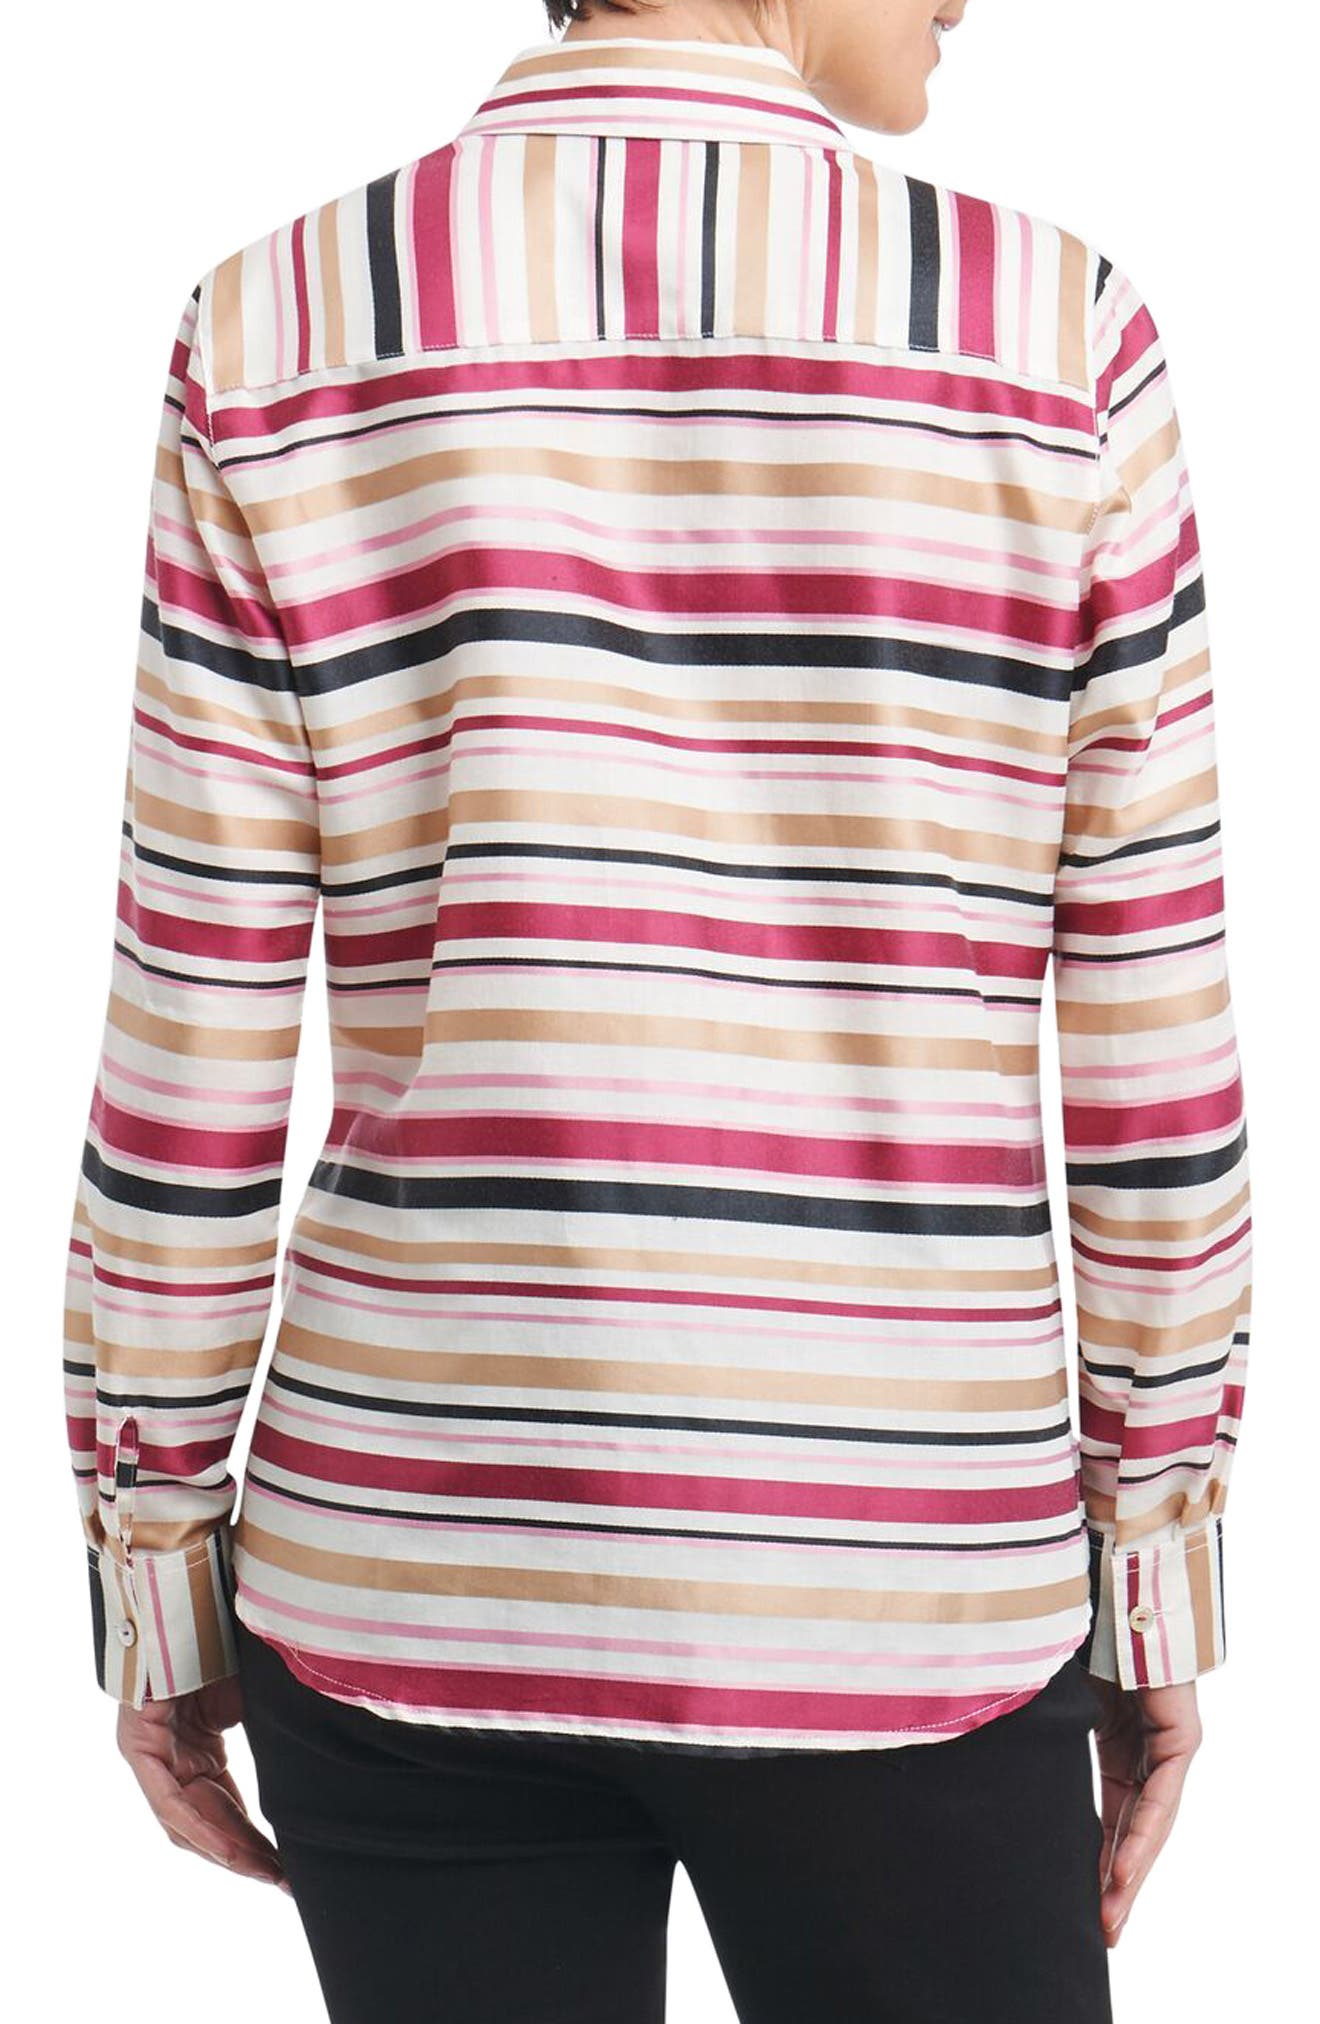 Addison Stripe Print Sateen Shirt,                             Alternate thumbnail 2, color,                             208